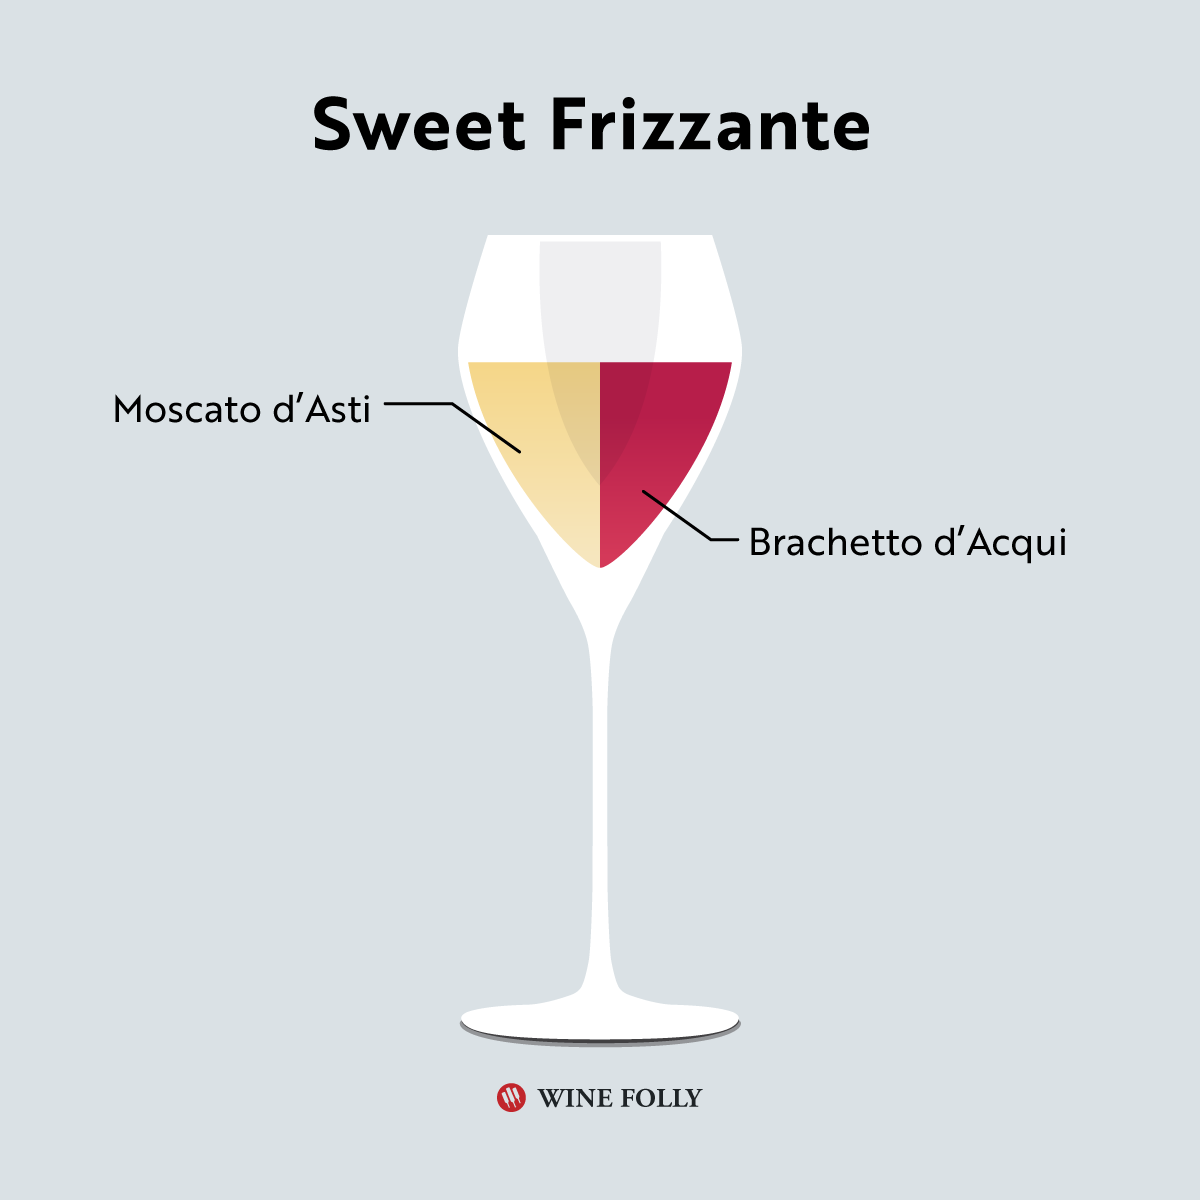 Moscato d'Asti and Brachetto d'Acqui are both sweet sparkling wines from Italy - Wine Folly